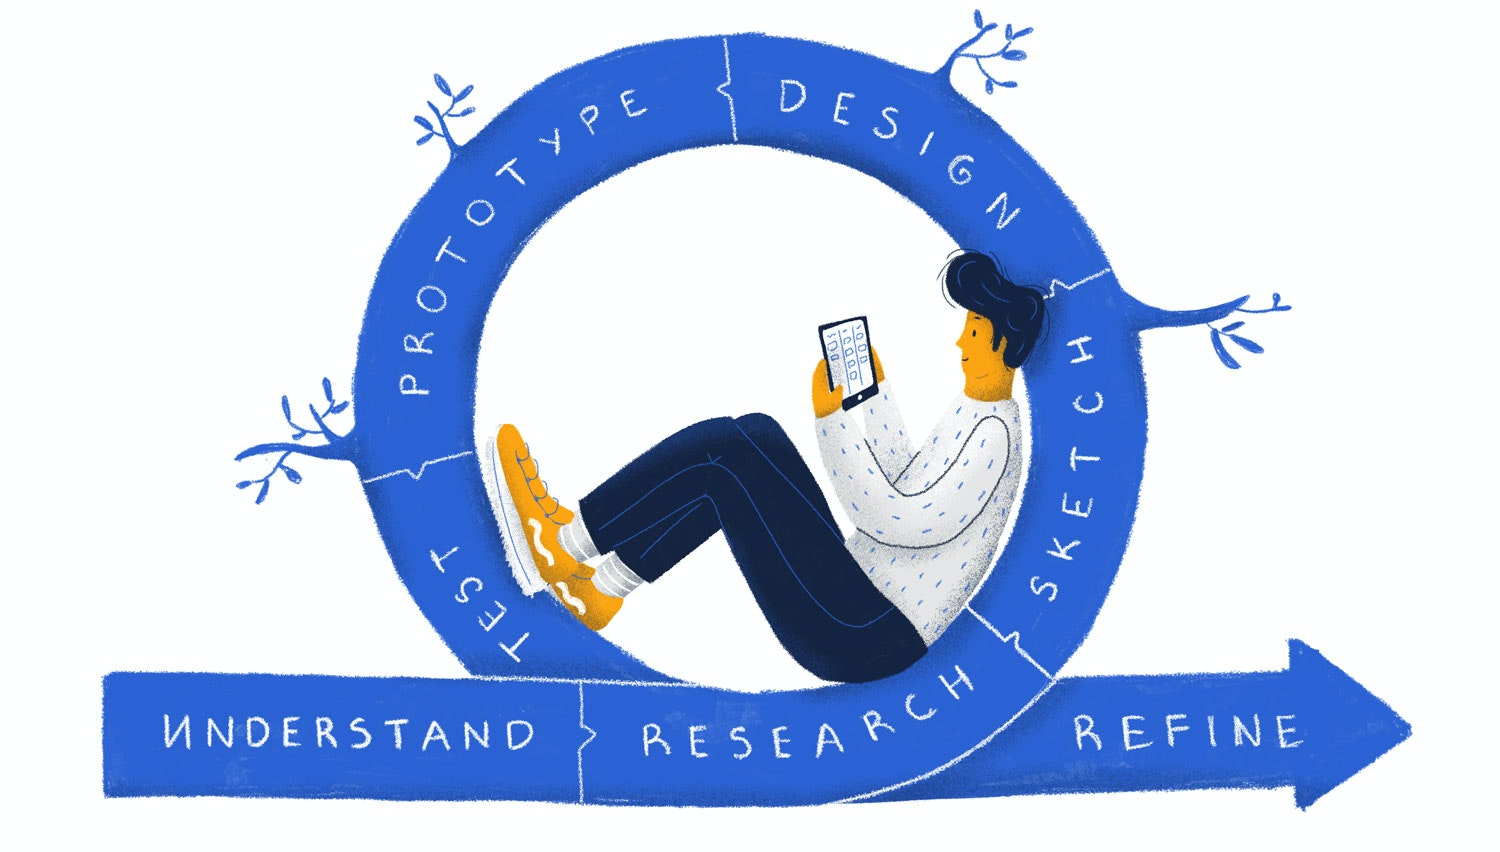 What is Agile Design and how to apply it?